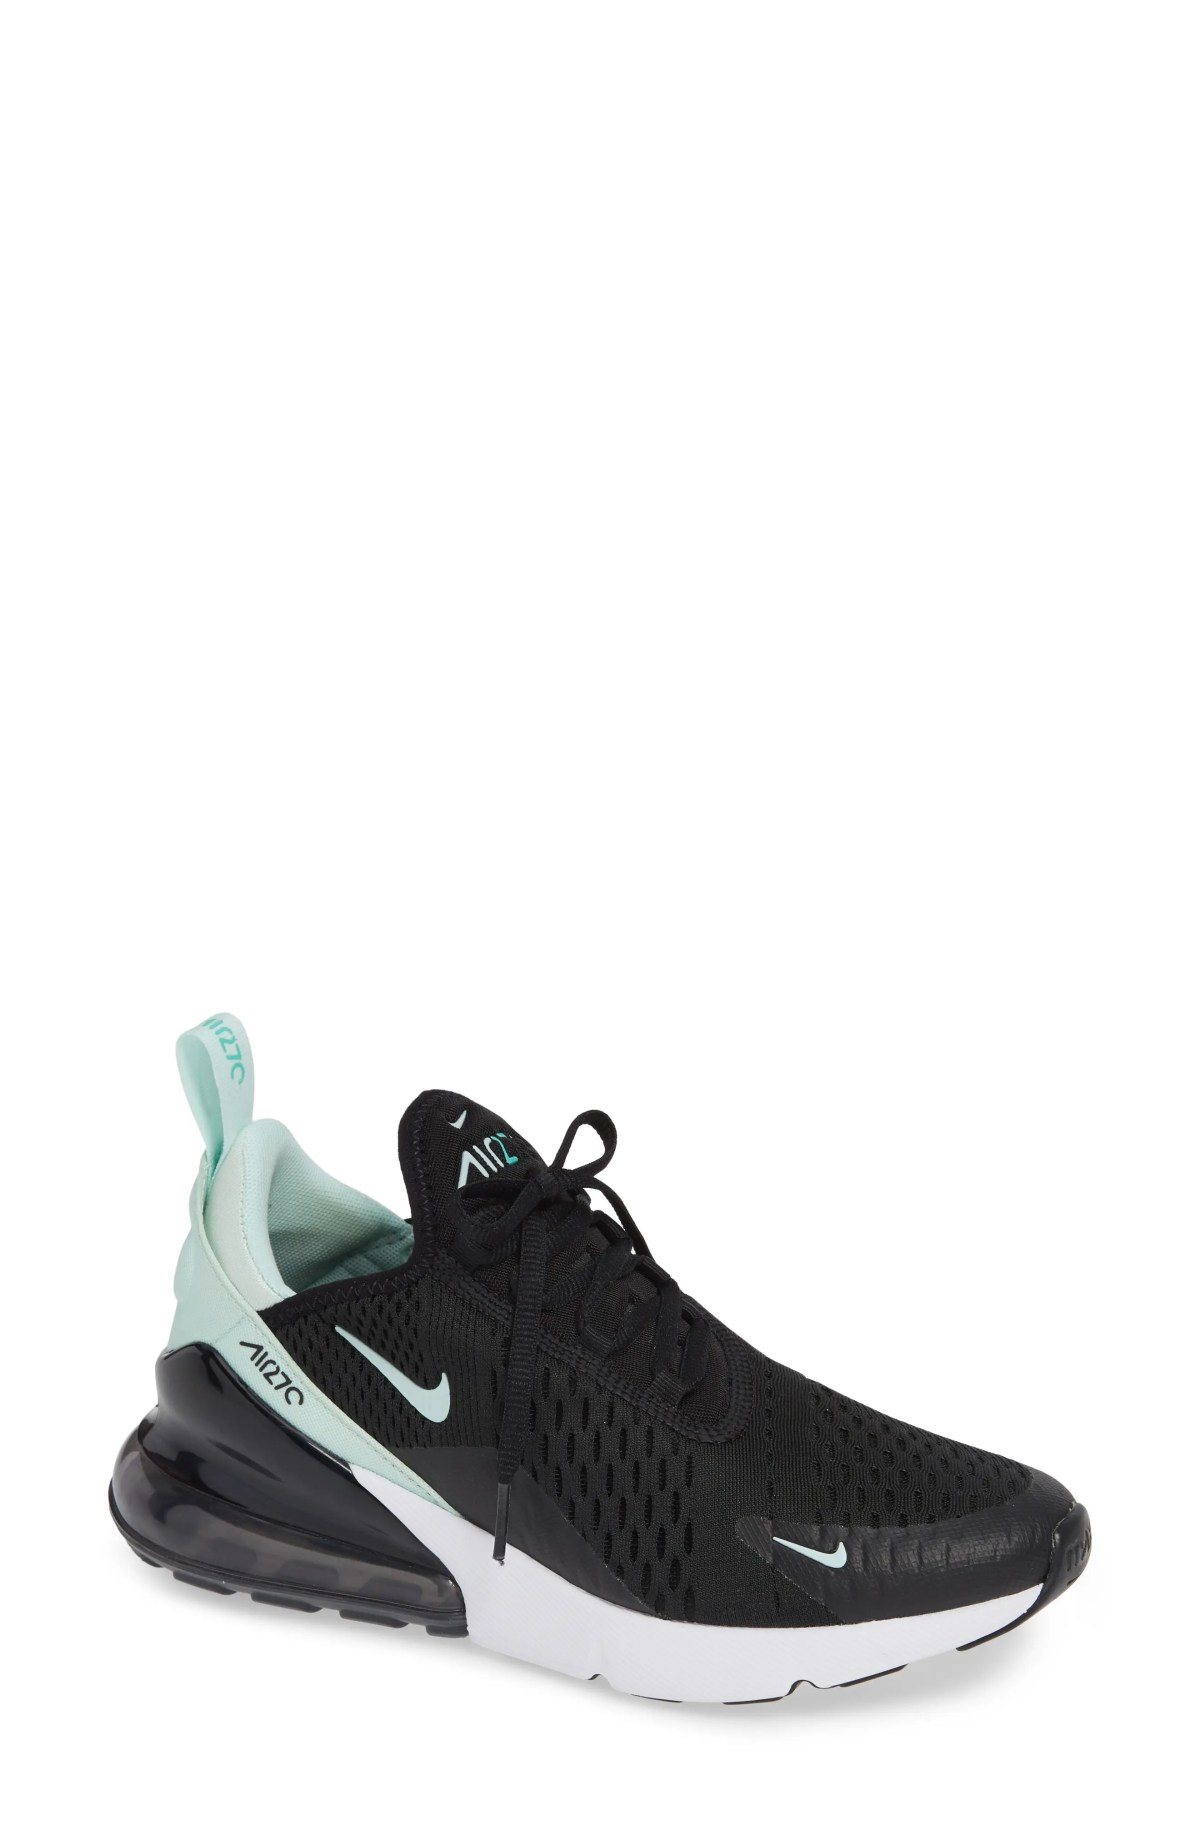 NIKE Air Max 270 Premium Sneaker, Main, color, BLACK/ IGLOO TURQUOISE WHITE